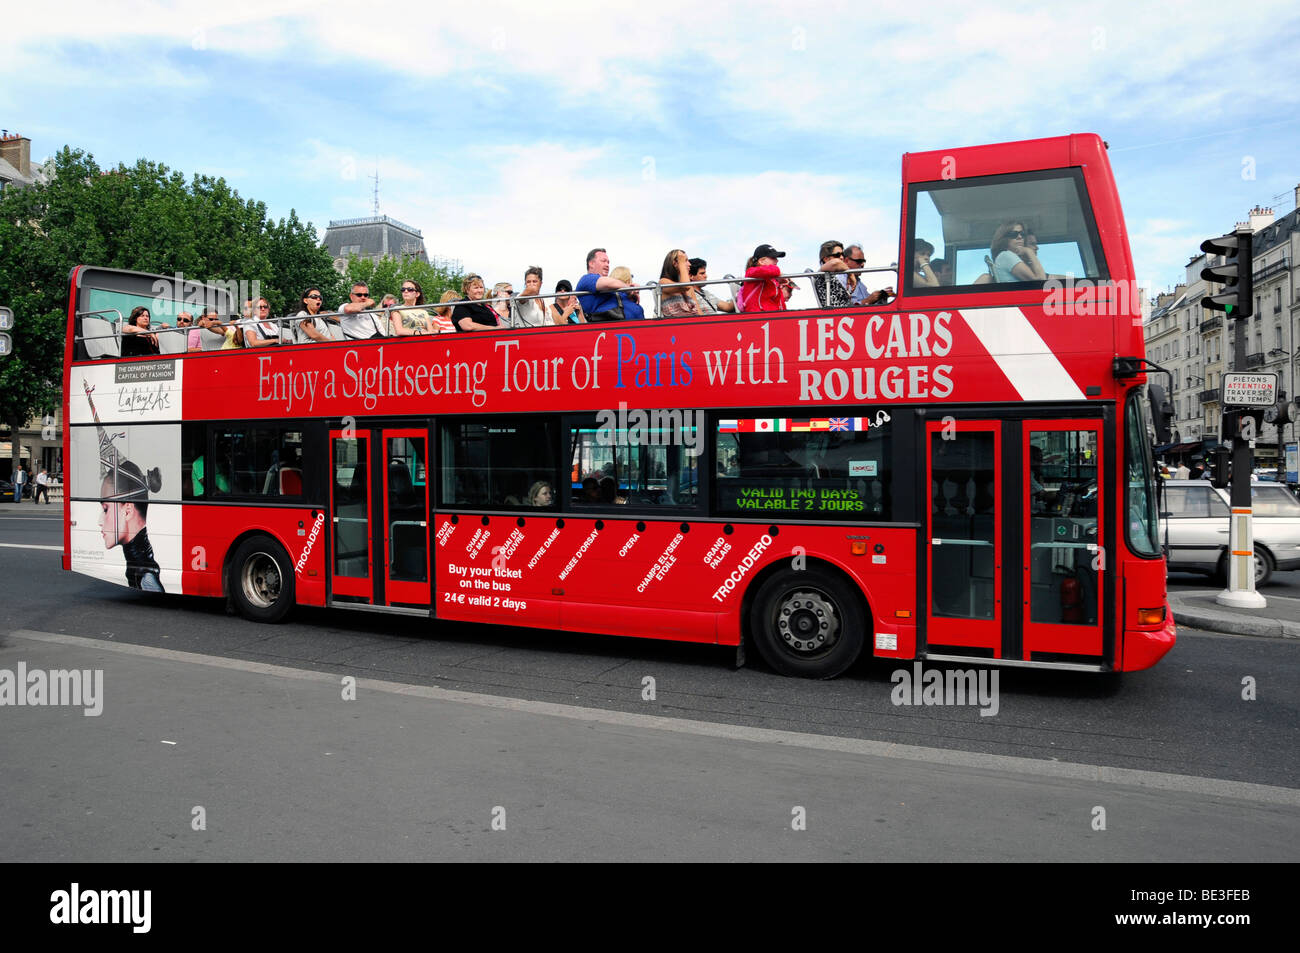 city tour in an open sightseeing bus paris france europe stock photo 25893571 alamy. Black Bedroom Furniture Sets. Home Design Ideas